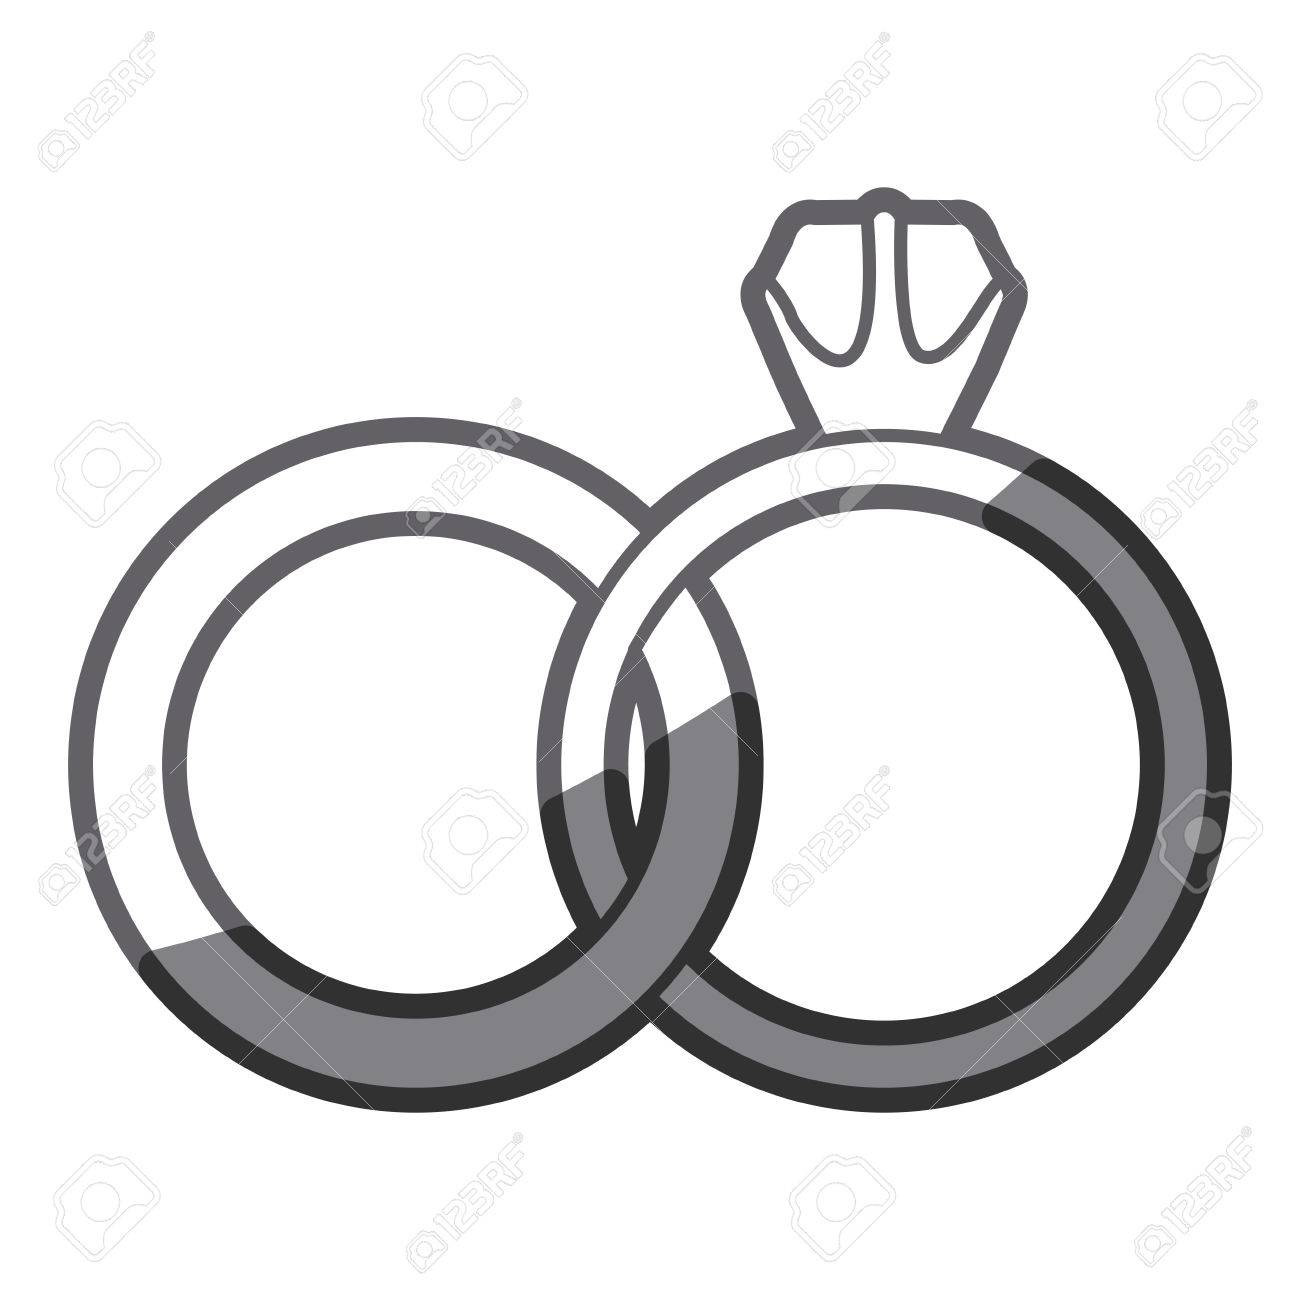 1300x1300 Grayscale Silhouette Of Wedding Rings Vector Illustration Royalty